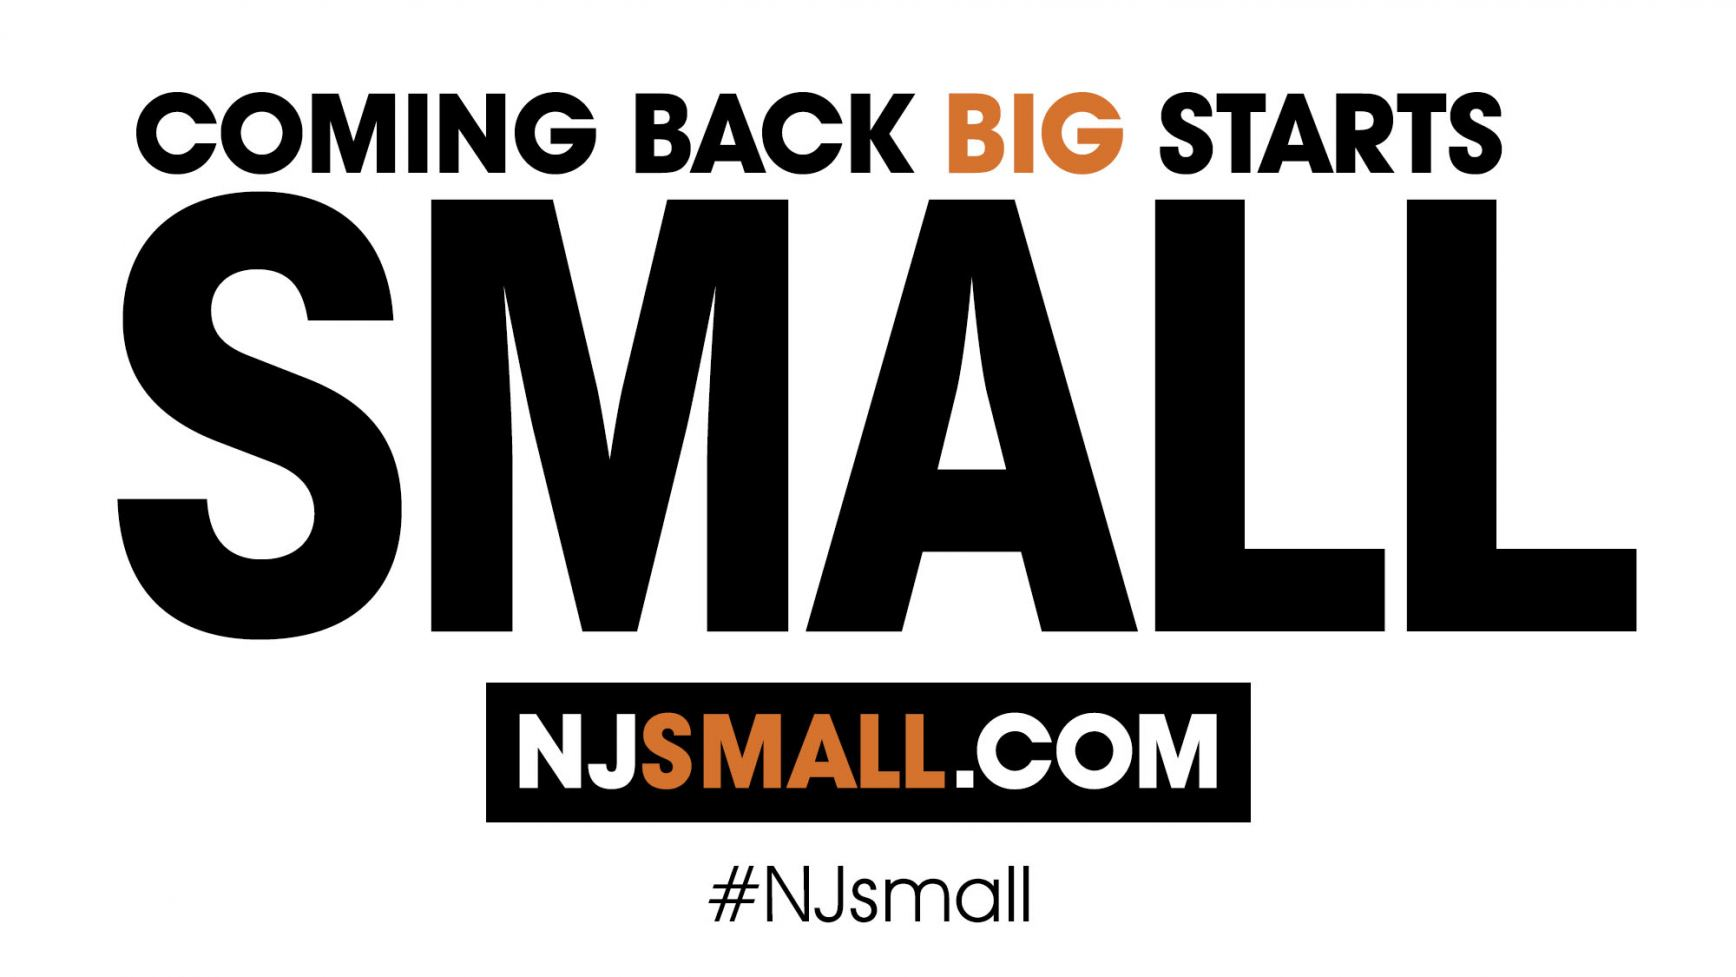 NJsmall seeks to speed up NJ's economic recovery